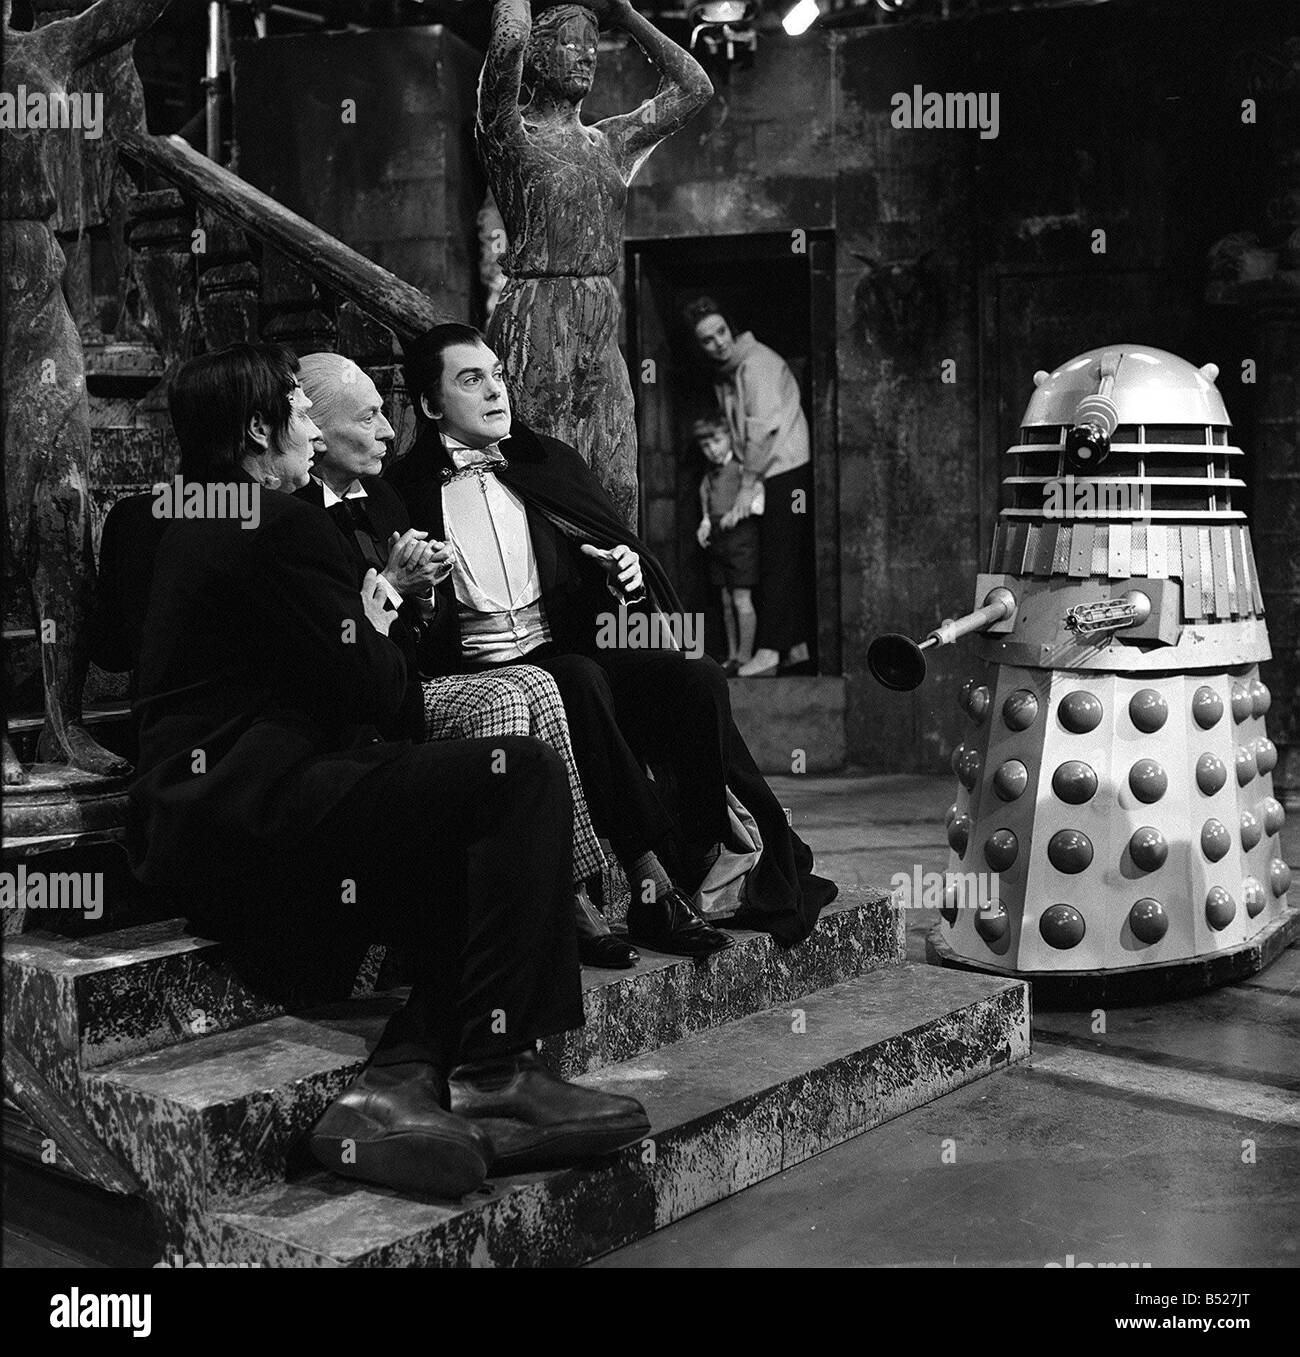 Television programme Dr Who May 1965 a scene from the TV series with William Hartnell as Dr Who John Maxim as Frankenstein Stock Photo